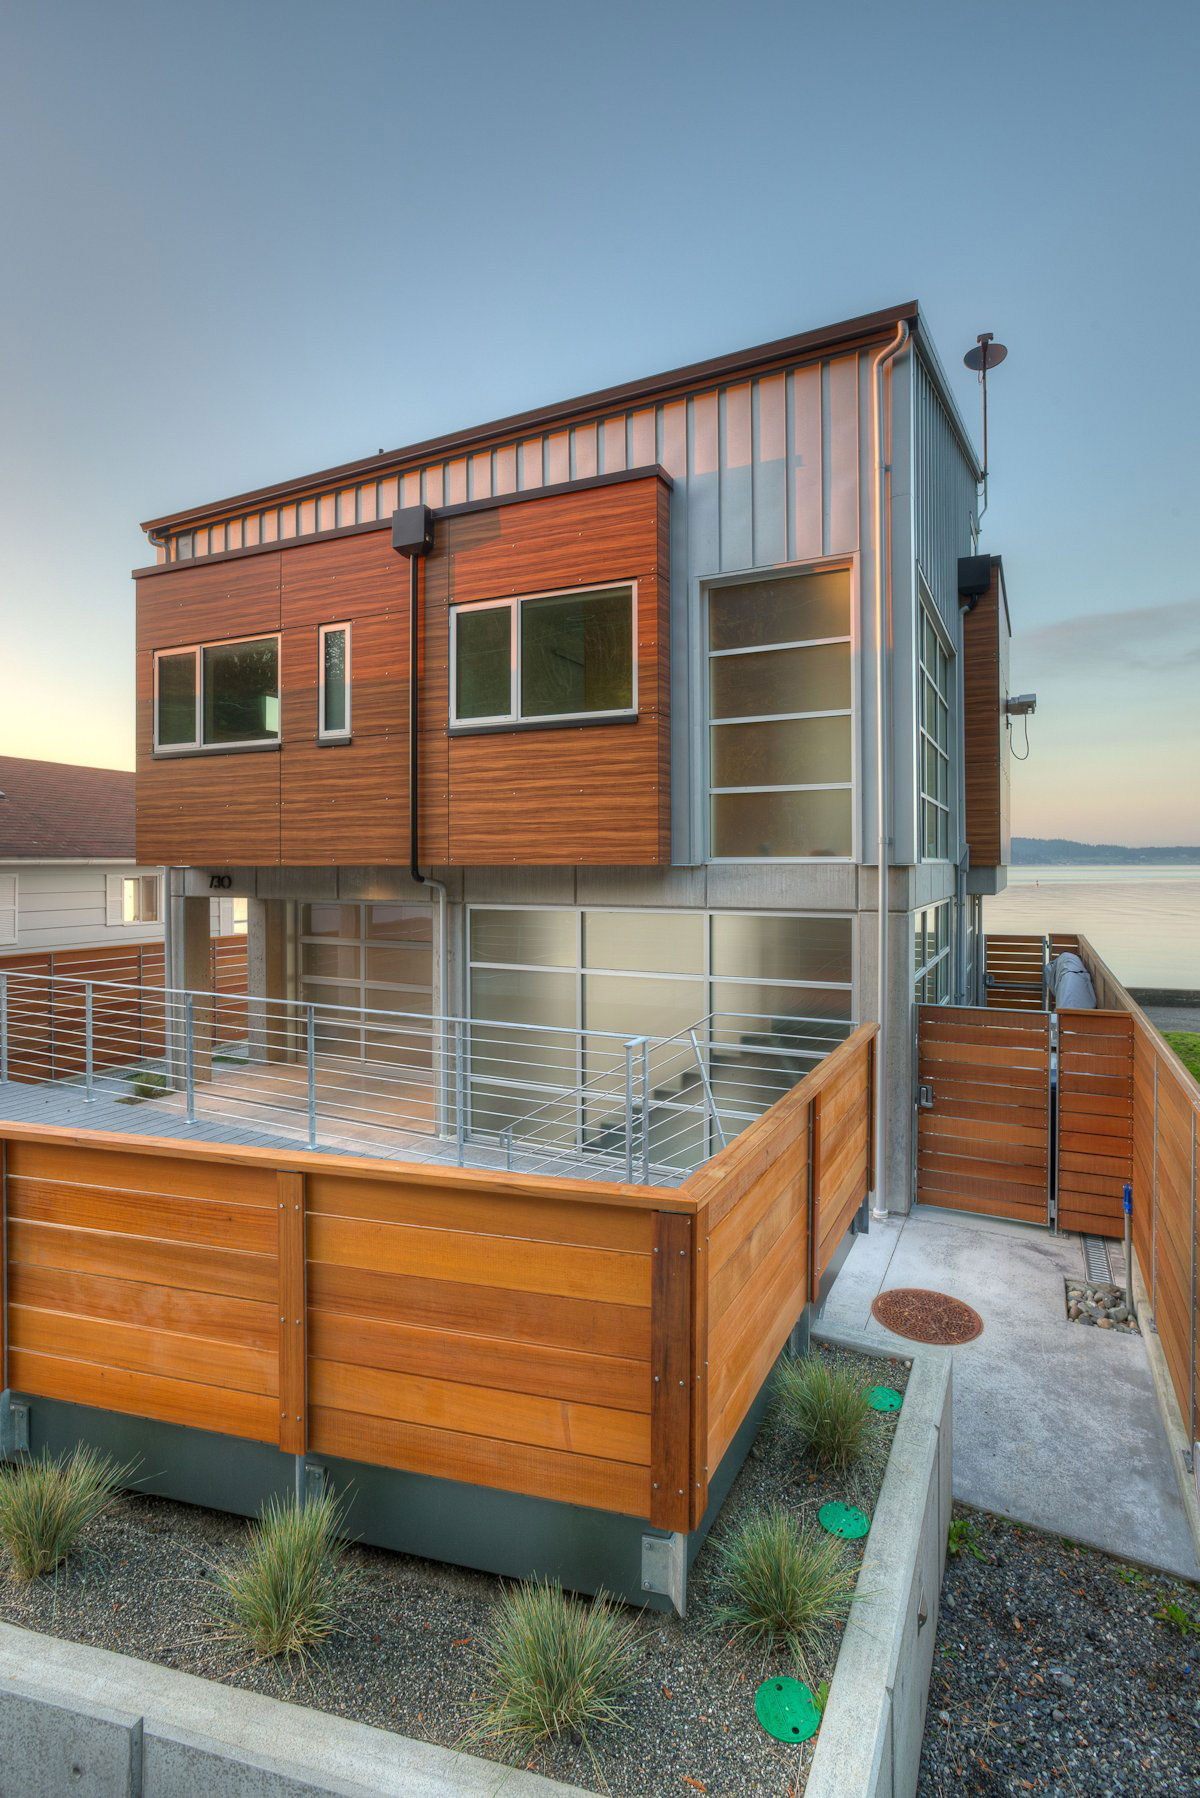 Tsunami house by designs northwest architects homedezen for Northwest house designs